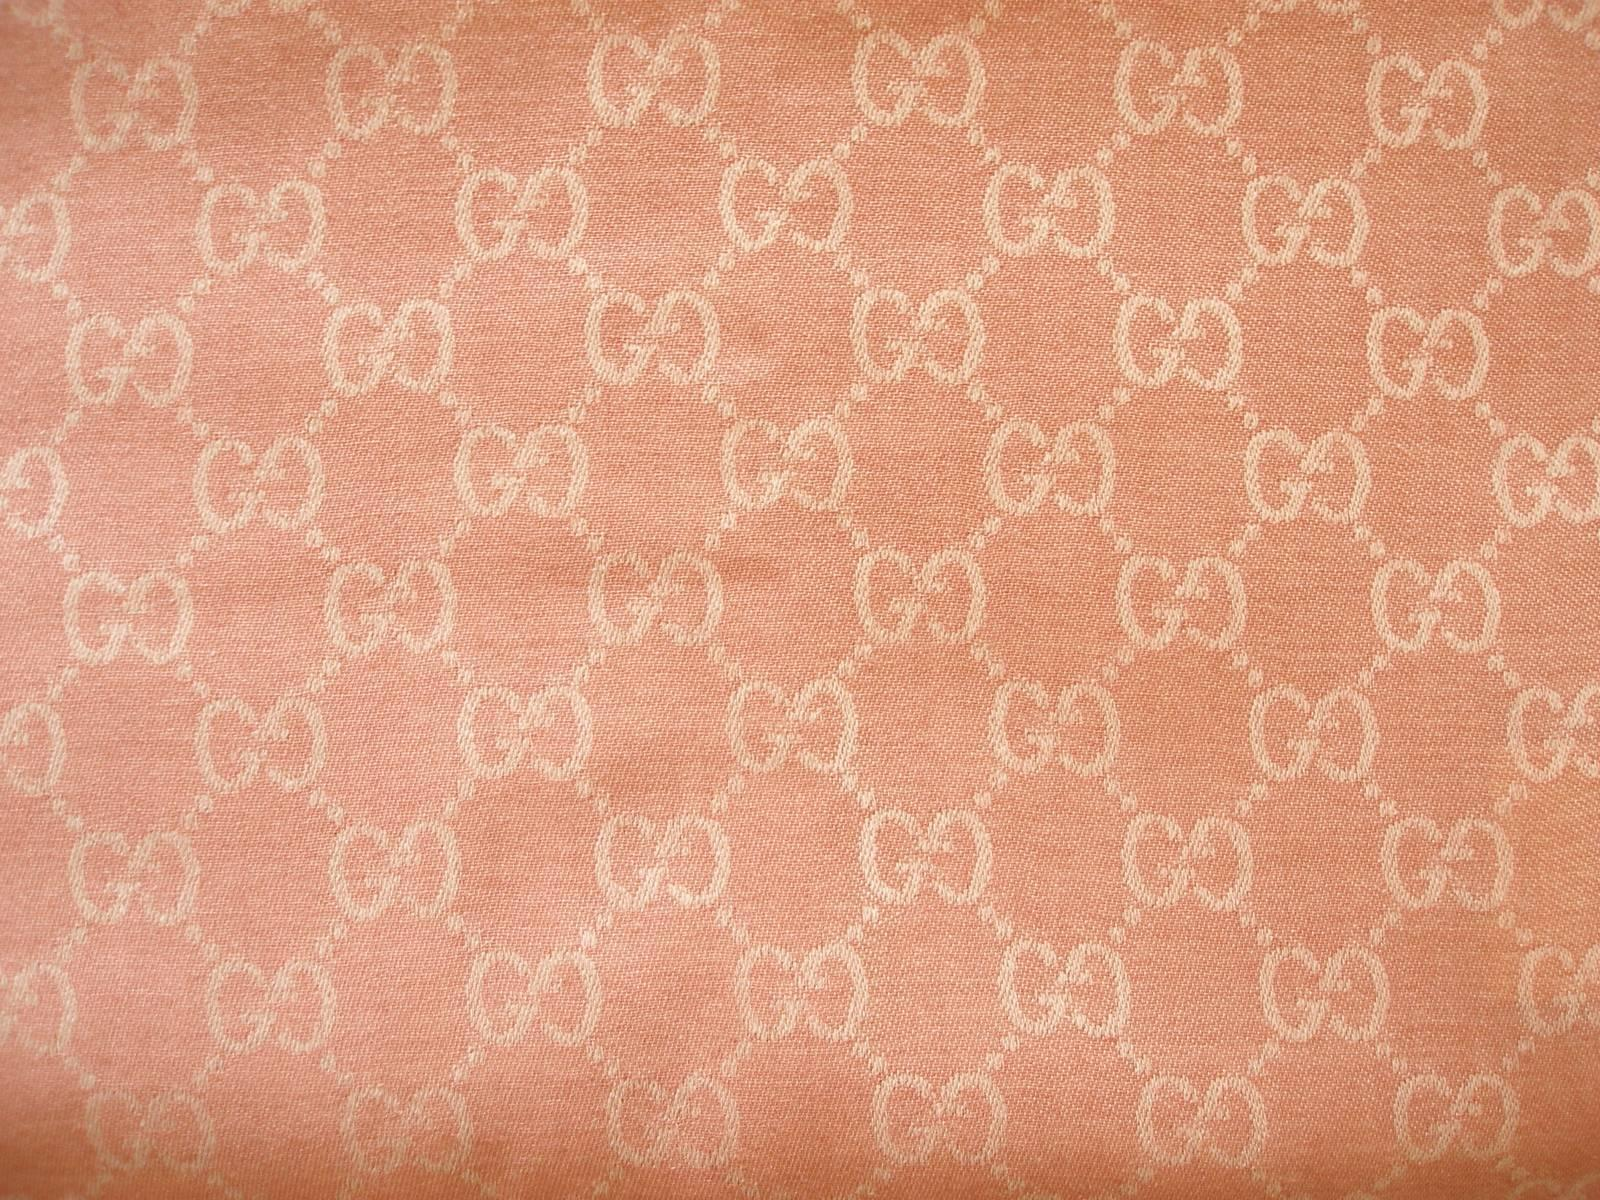 1600x1200 Gucci Guccissima Écharpe GG Powder Pink and Crème Wool and Silk ...